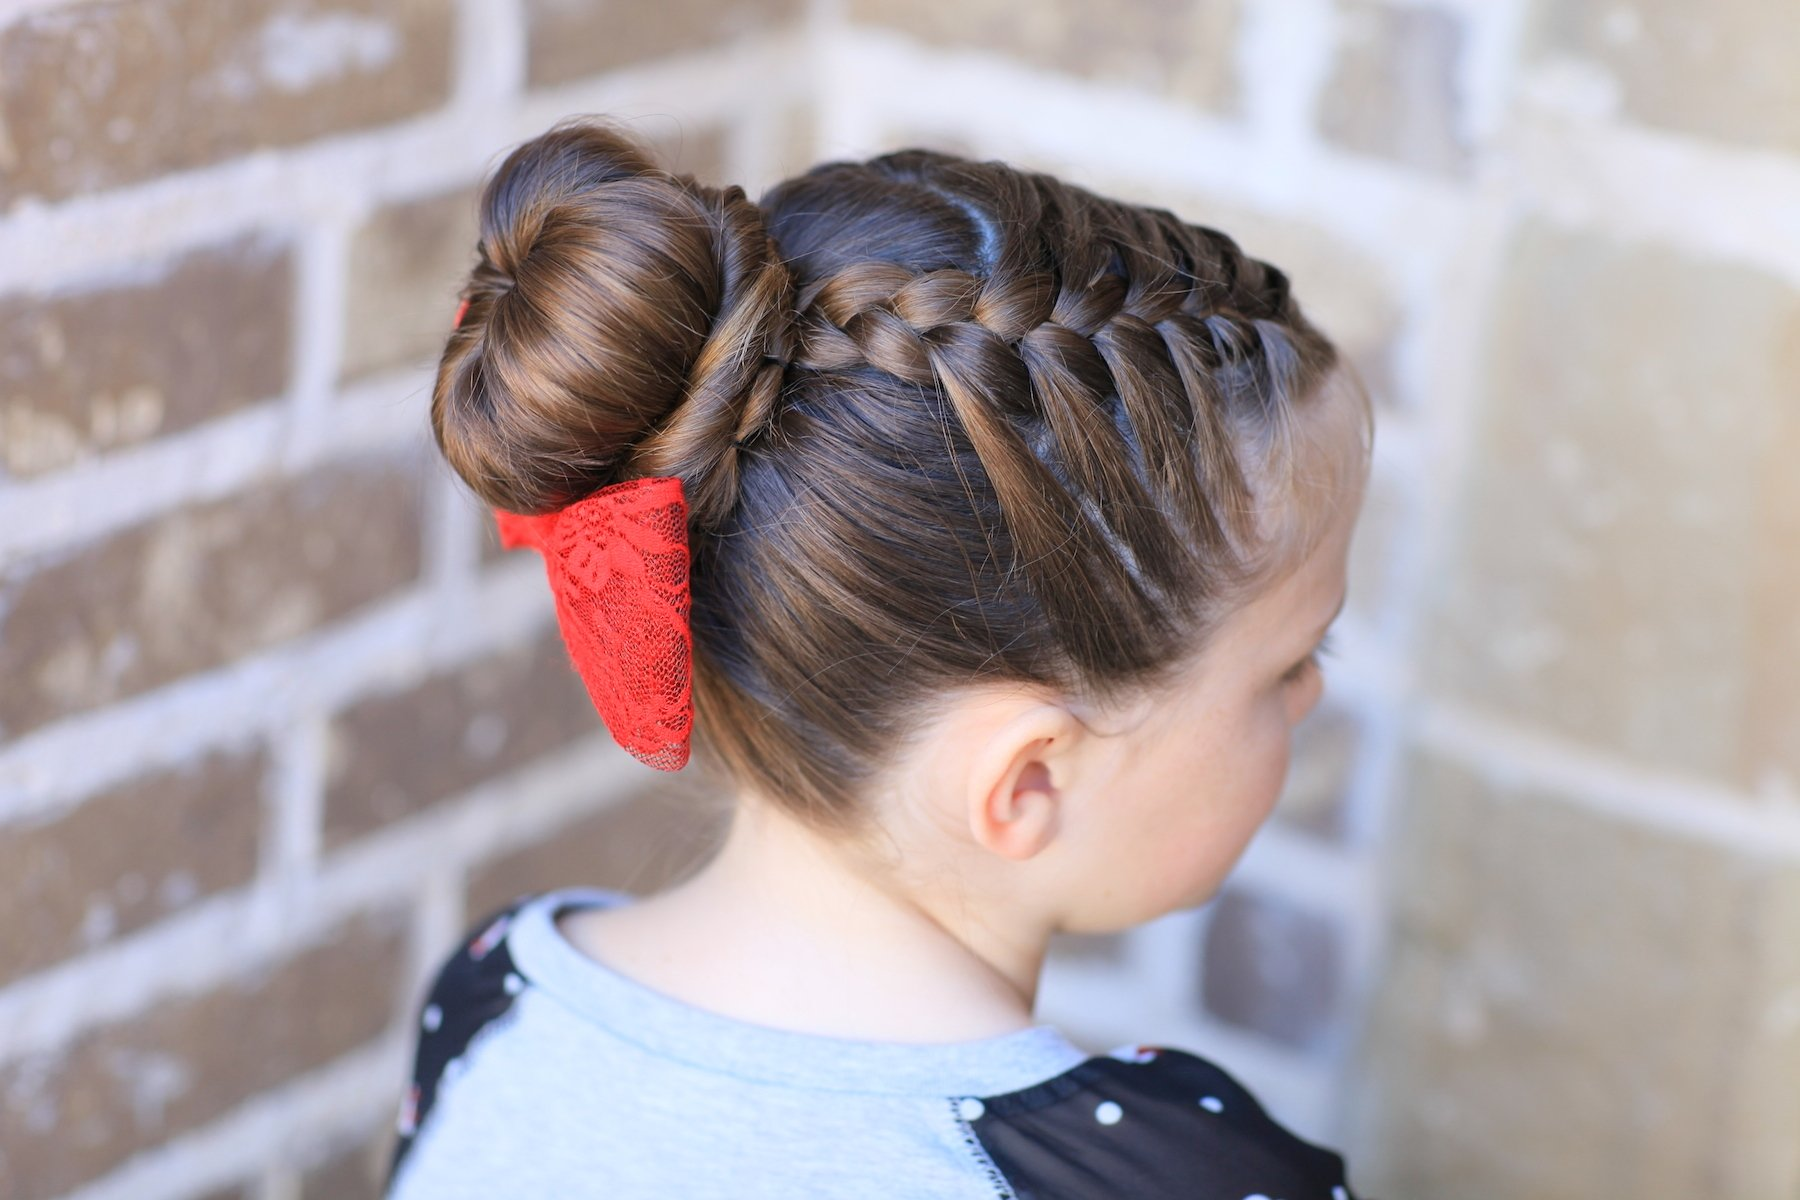 Top 10 Super Hairstyles for Valentine's Day 2014